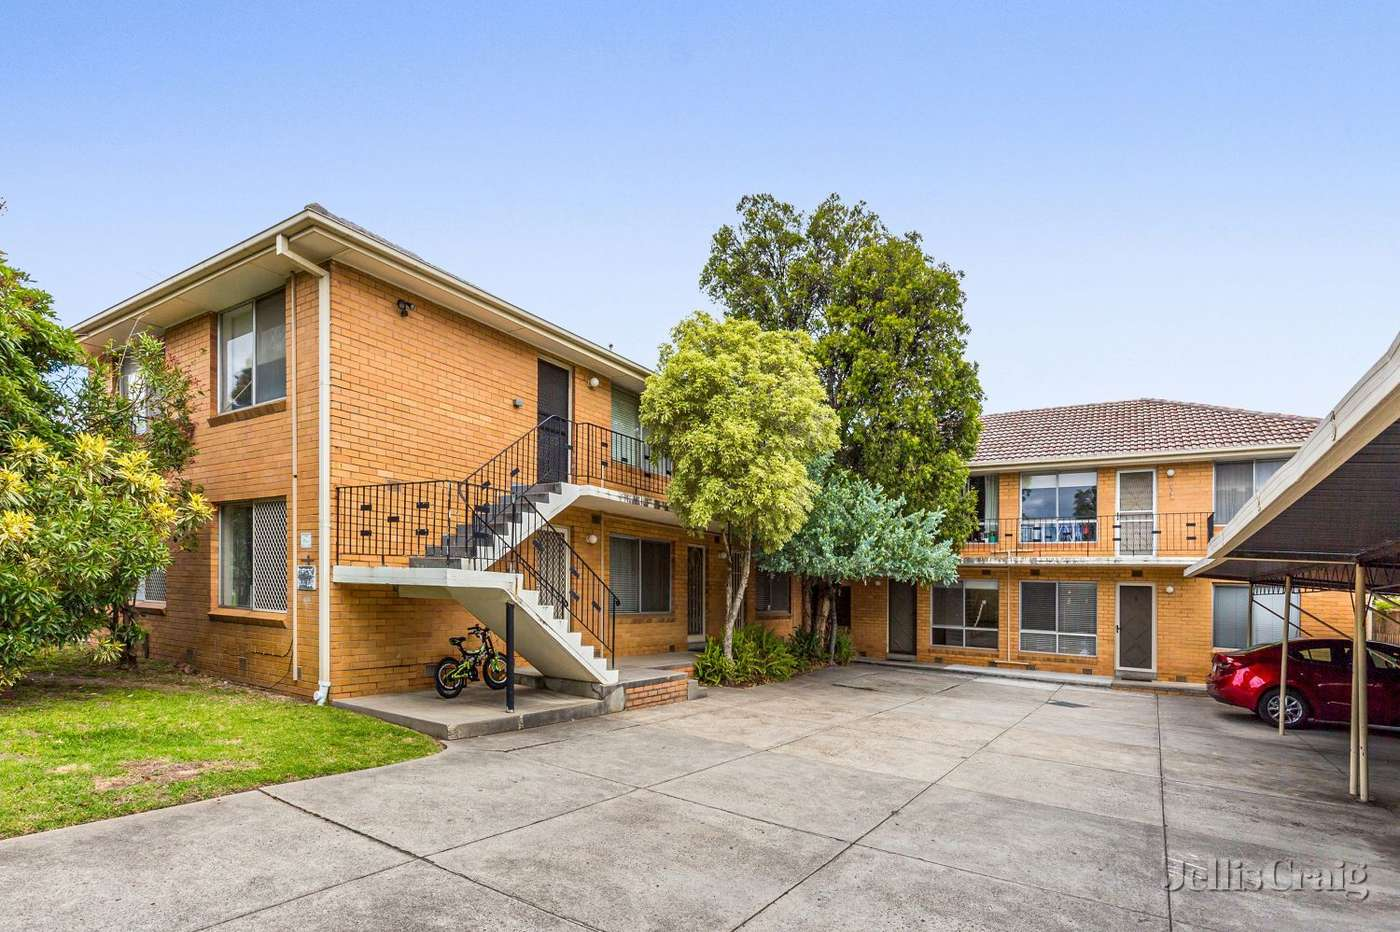 Main view of Homely apartment listing, 4/1 Looker Street, Murrumbeena, VIC 3163